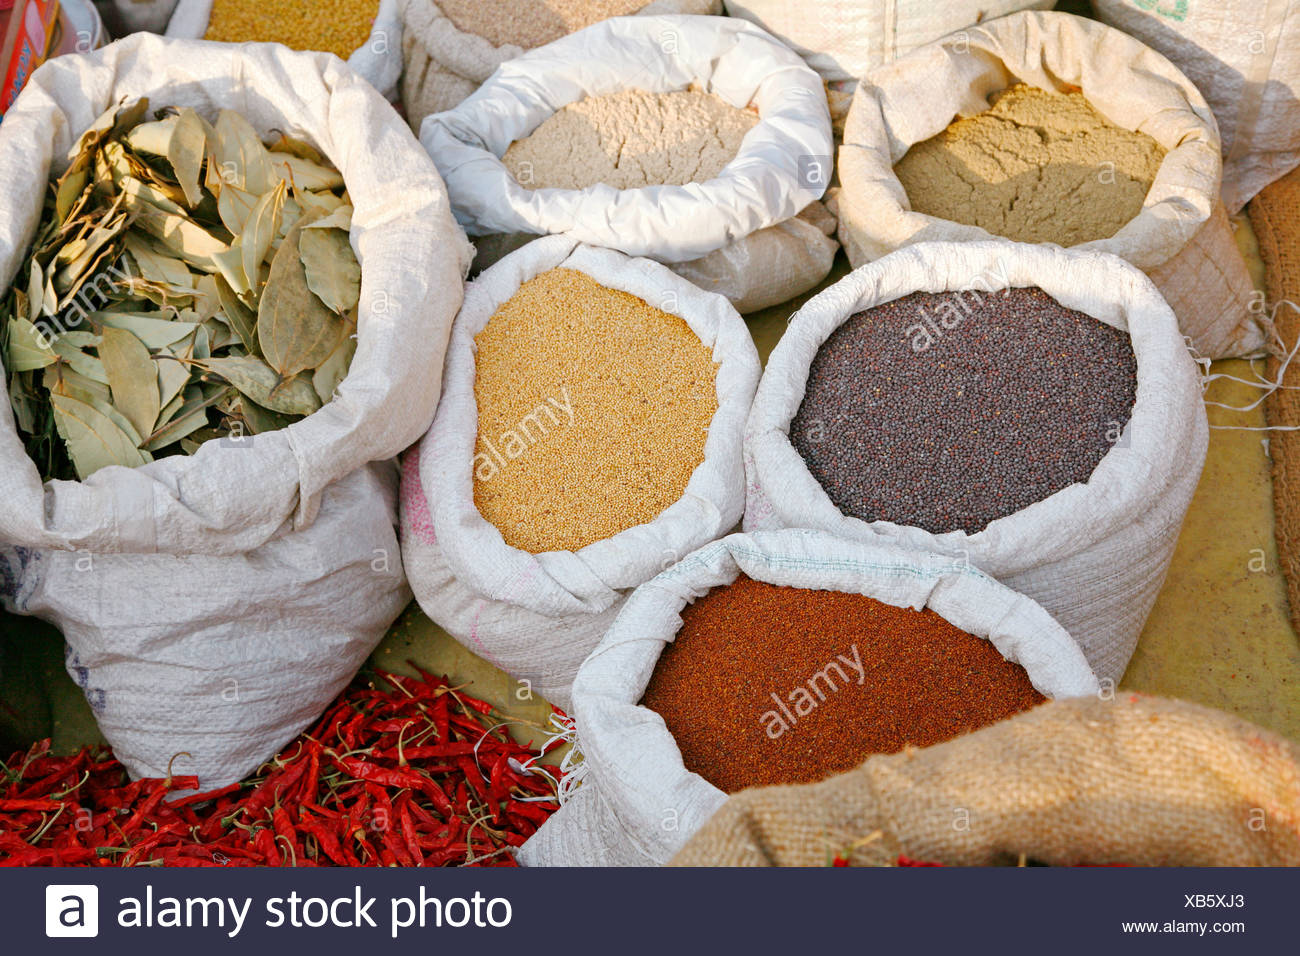 India, sacks of spices - Stock Image